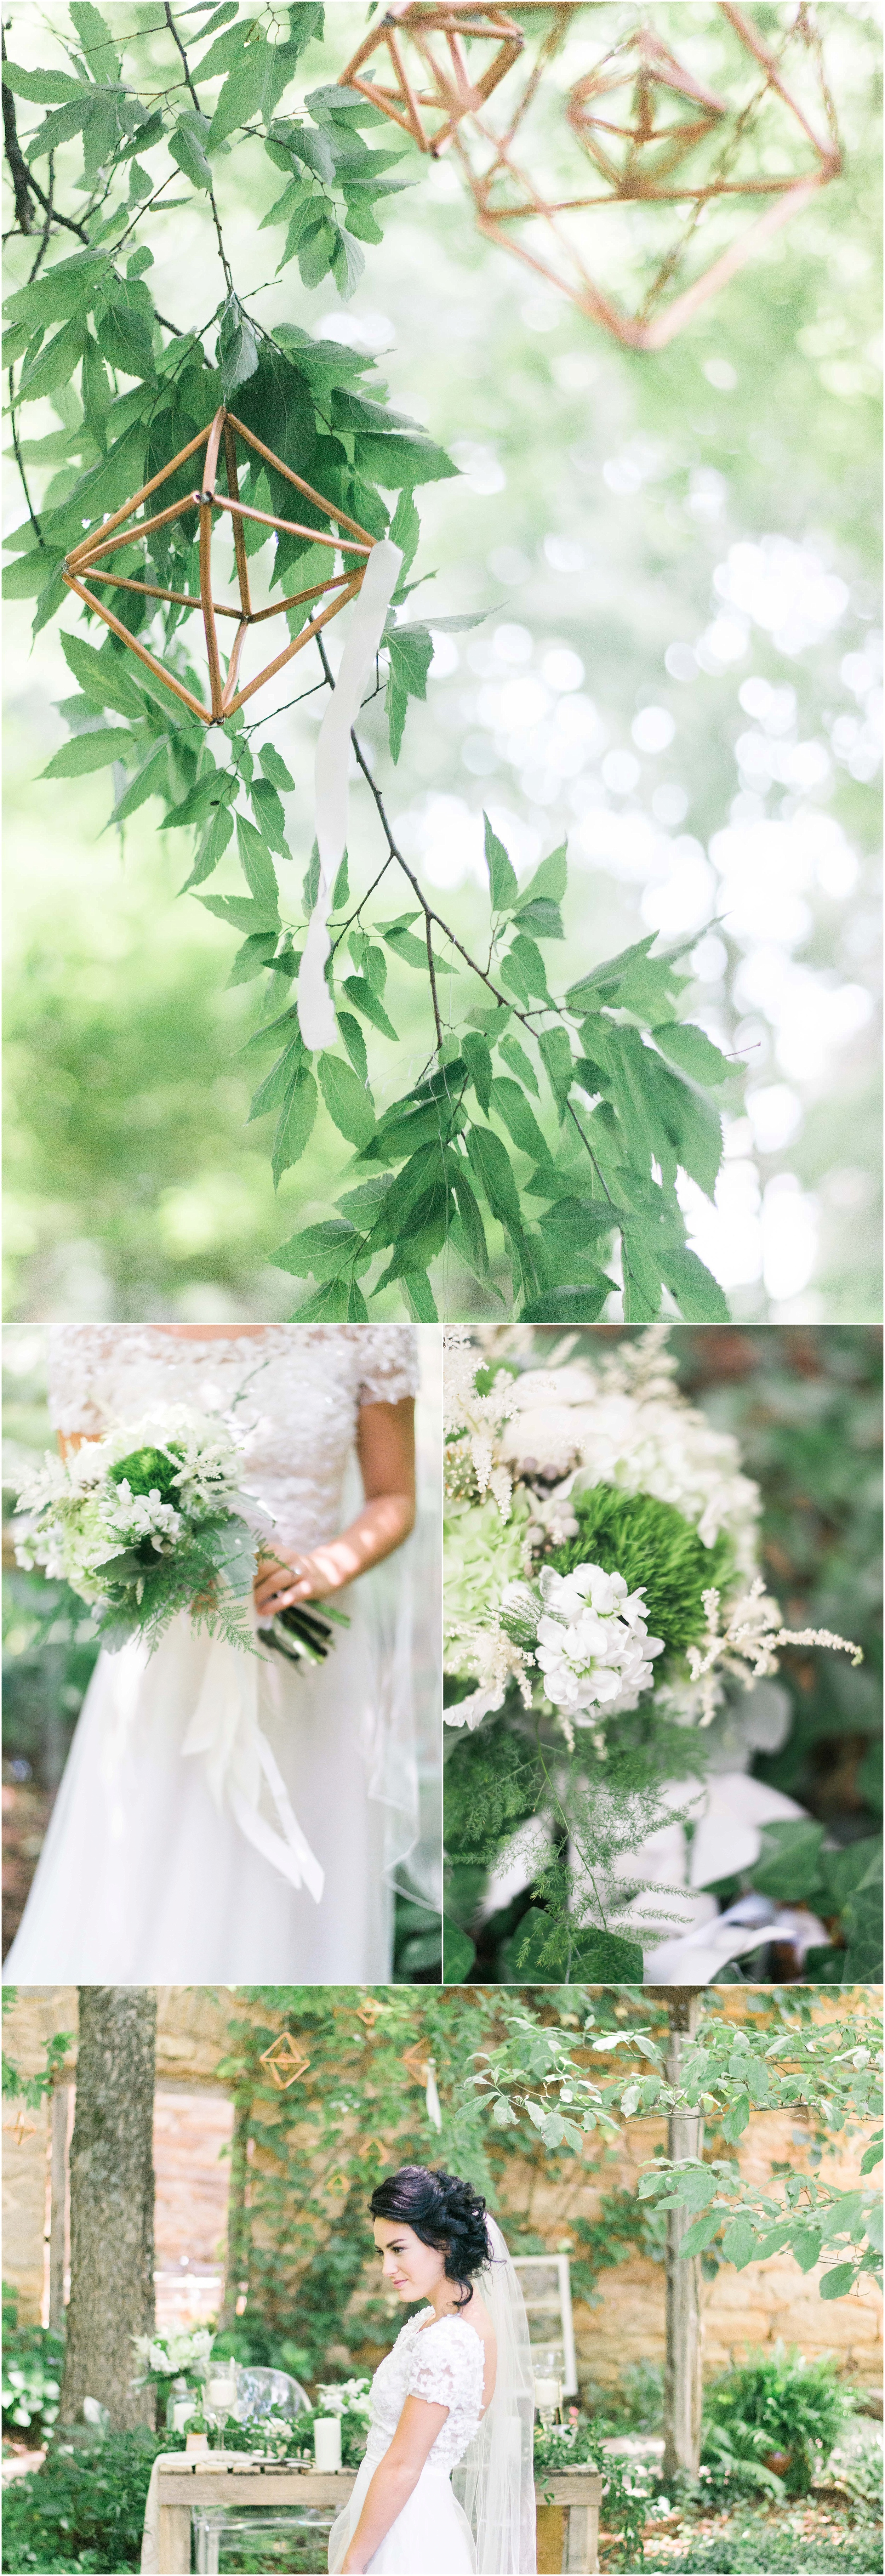 charlottesville_wedding Photographer_styled shoot_Style Me Pretty Feature1